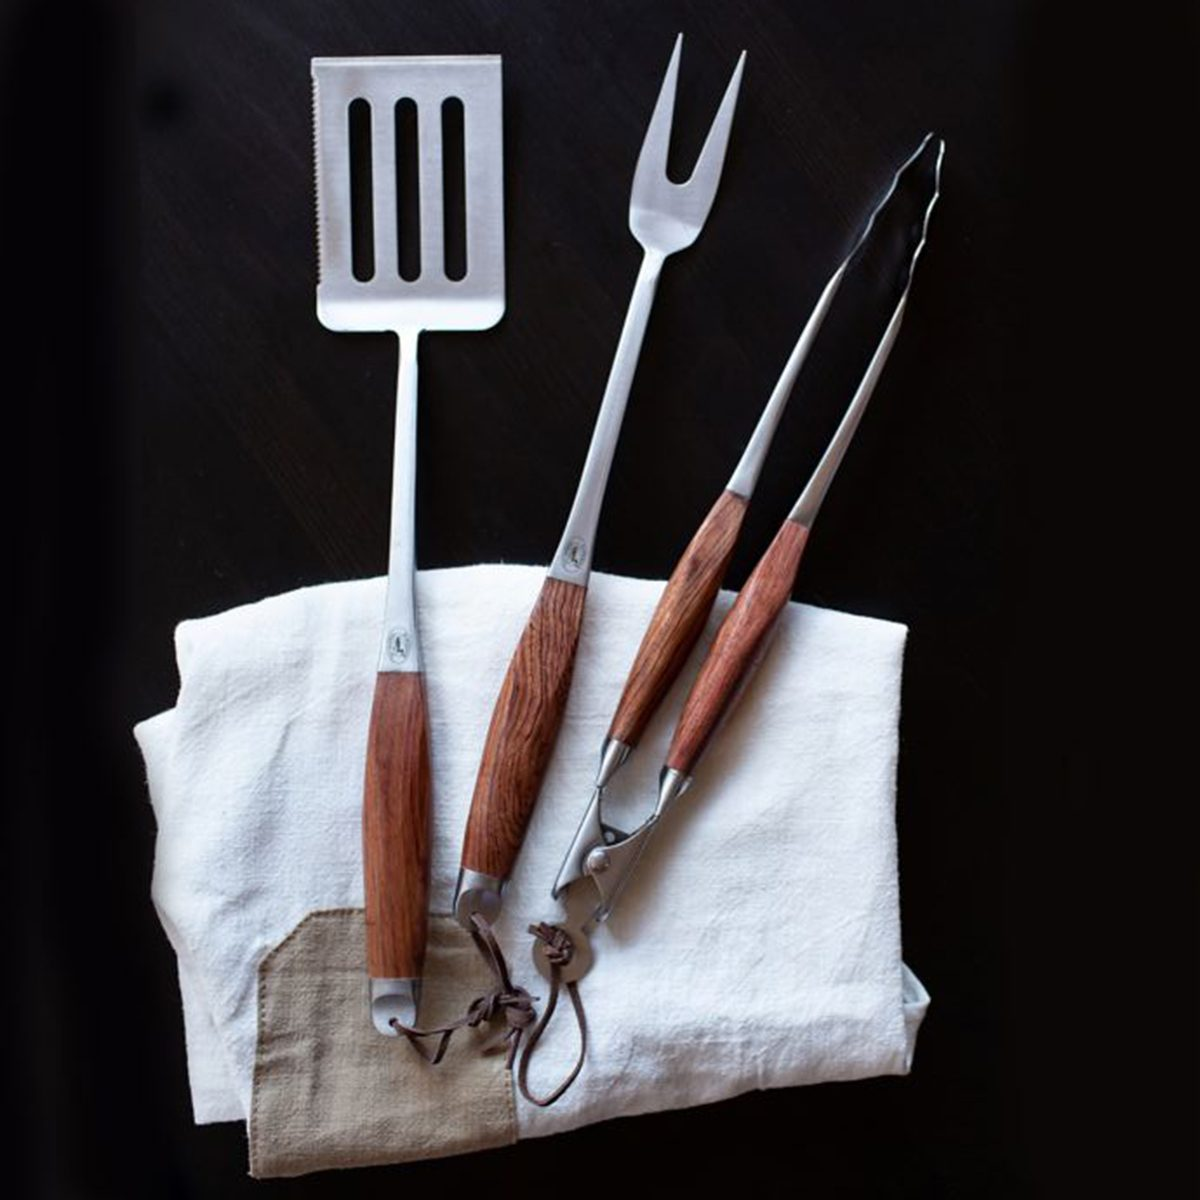 Grilling Spatula, Prongs and Tongs